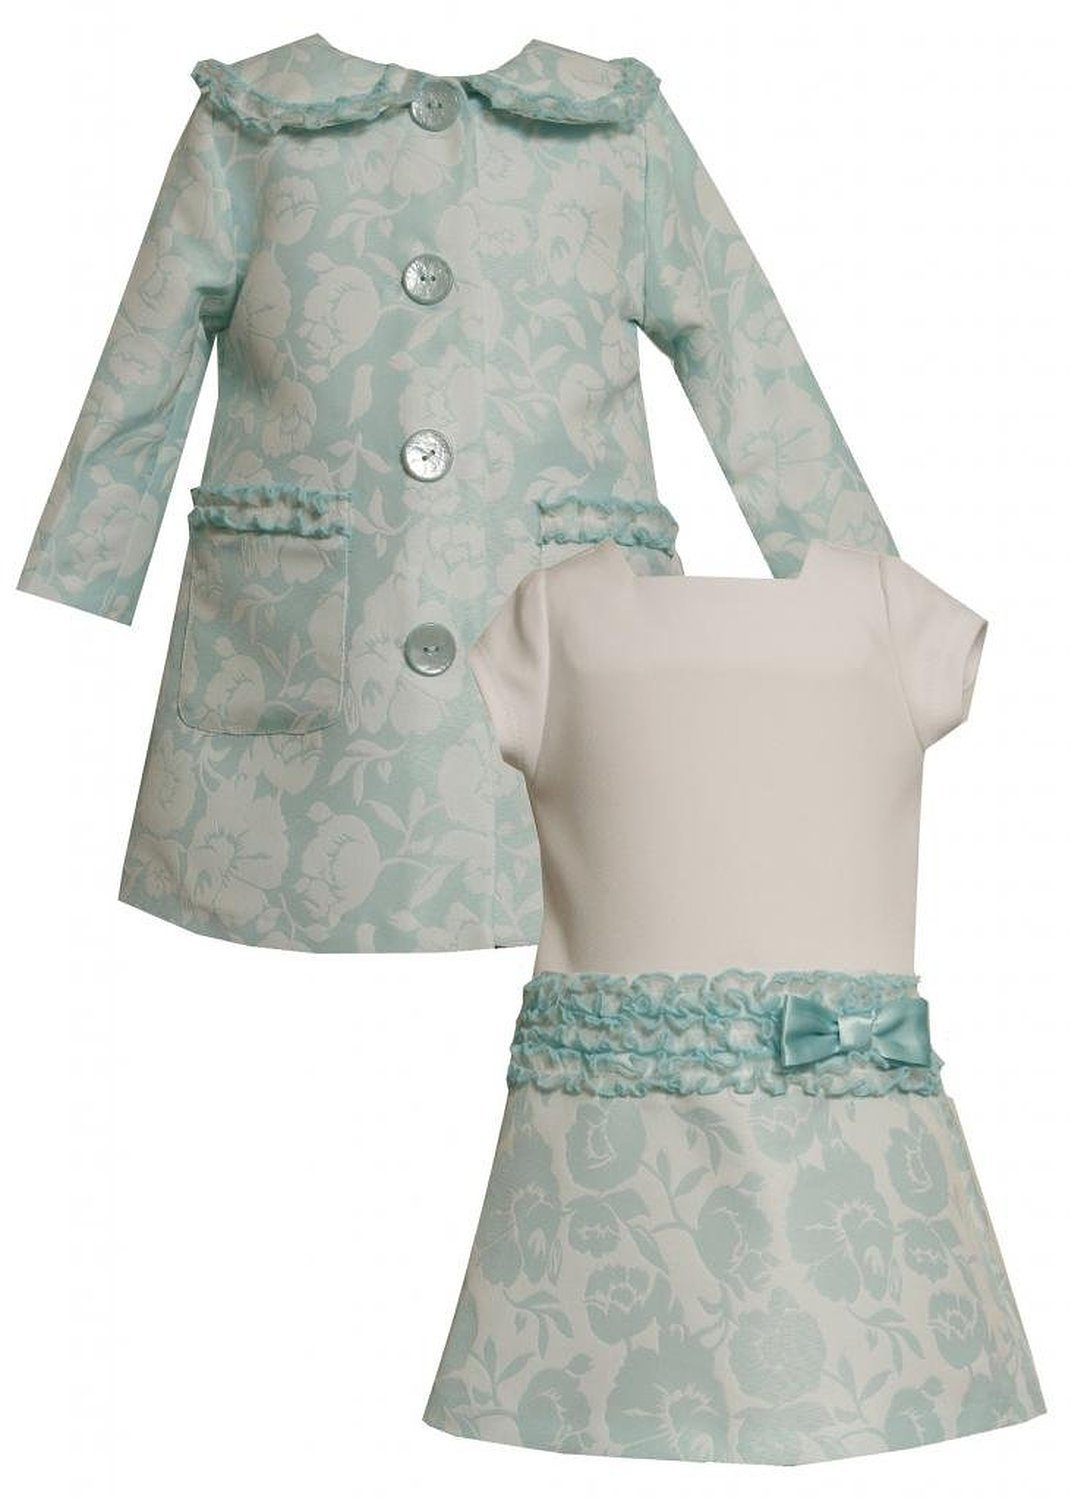 Bonnie Jean Baby Girl 3M-24M Aqua-Blue Ivory Ruffle Jacquard Dress/coat Set